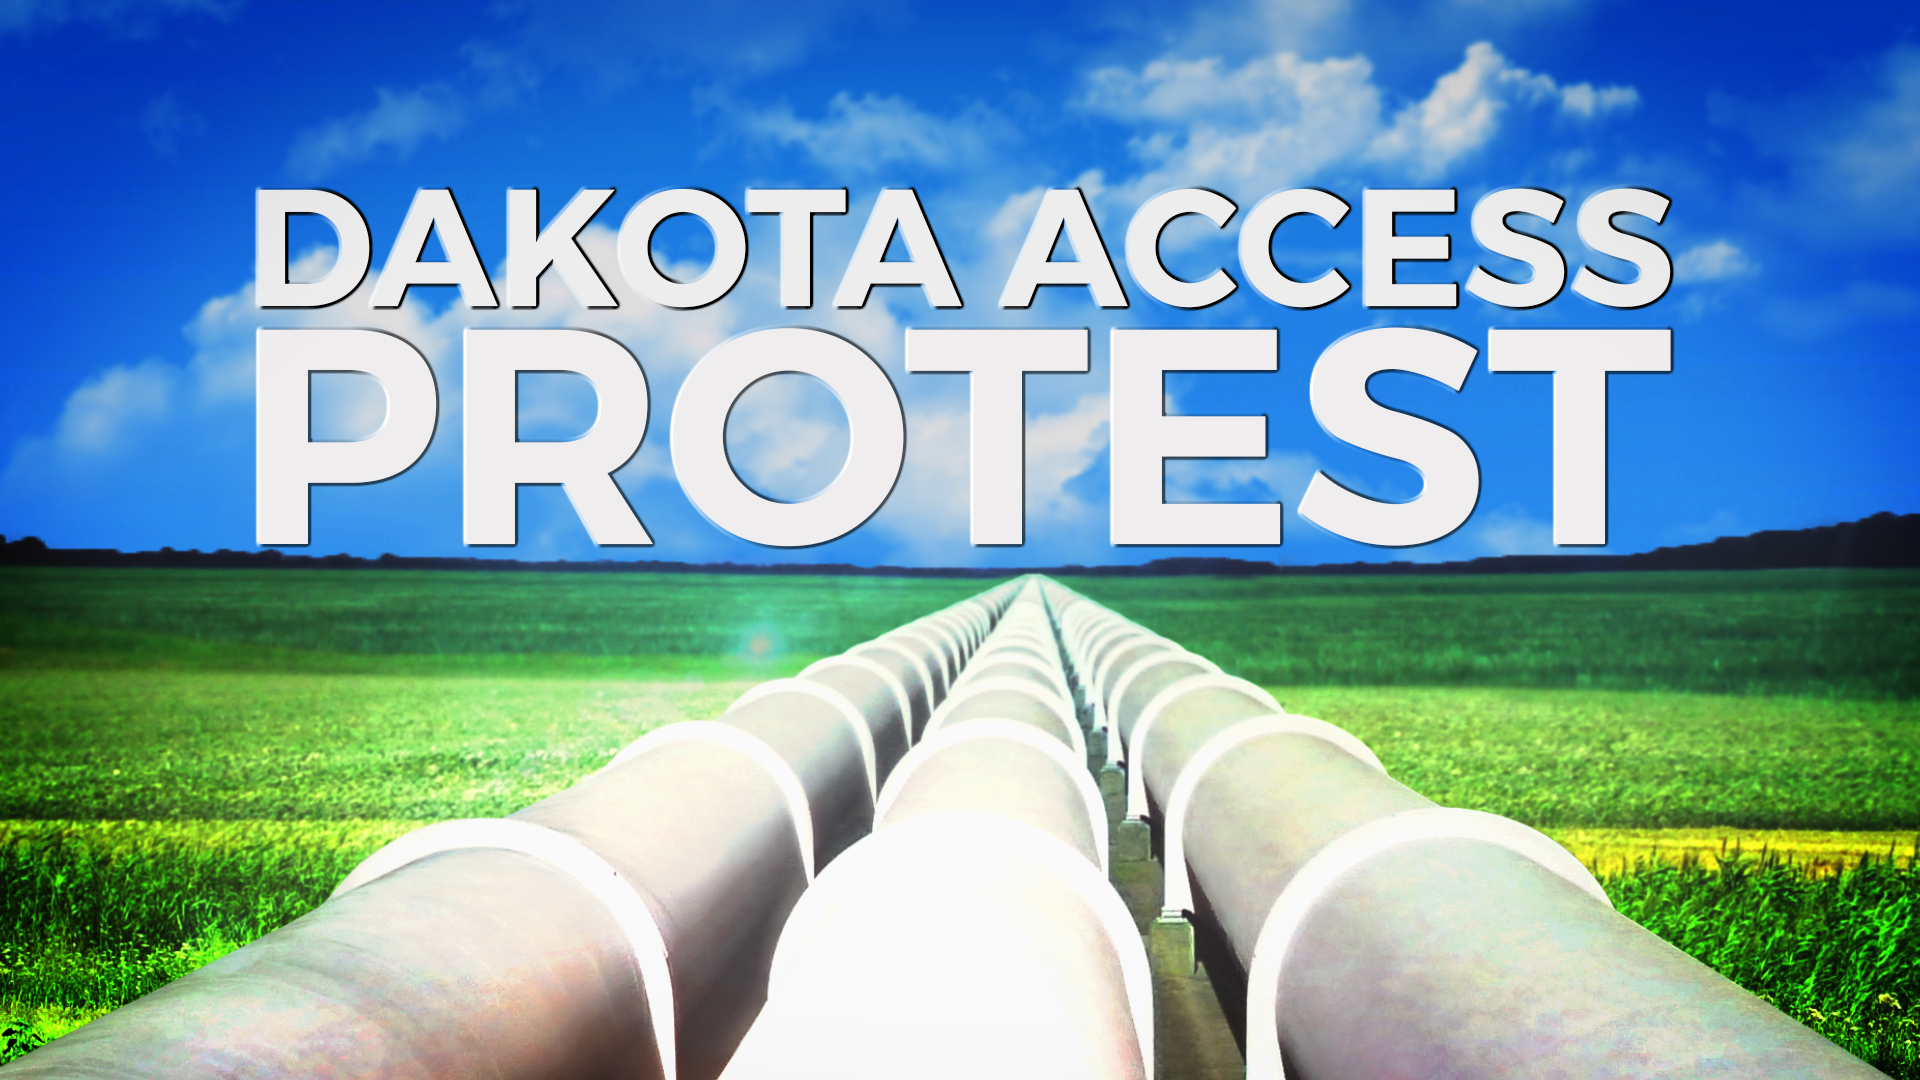 KELO Dakota Access Protest